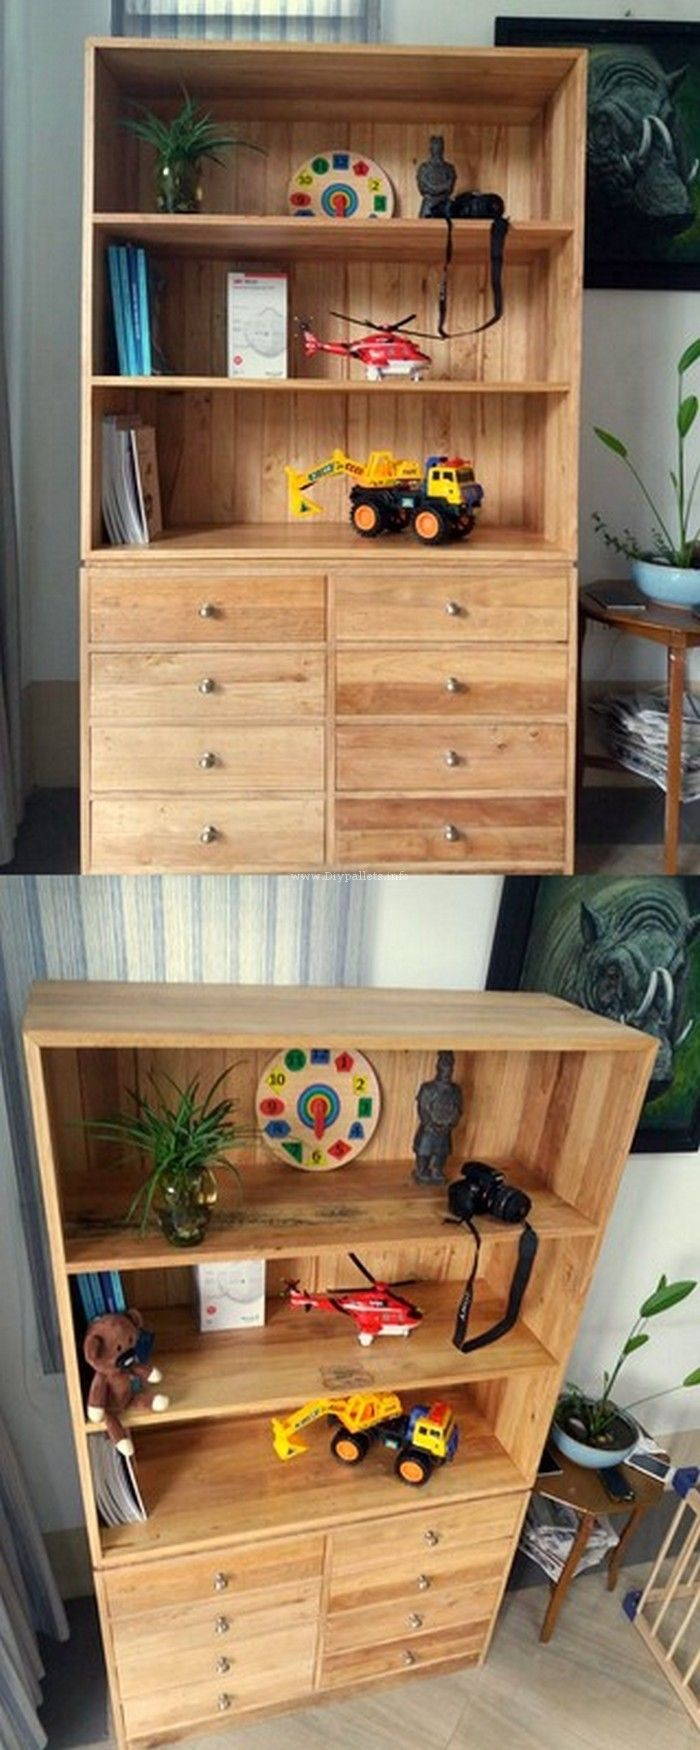 Importance ofDIY wood palletprojects is increasing day by day. You can say that creative people prefer to use waste materials for crafting home decor items. So we present wood pallet idea that you can follow to craft indoor and outdoor furniture that will be of your choice and will be made by you. There is […]